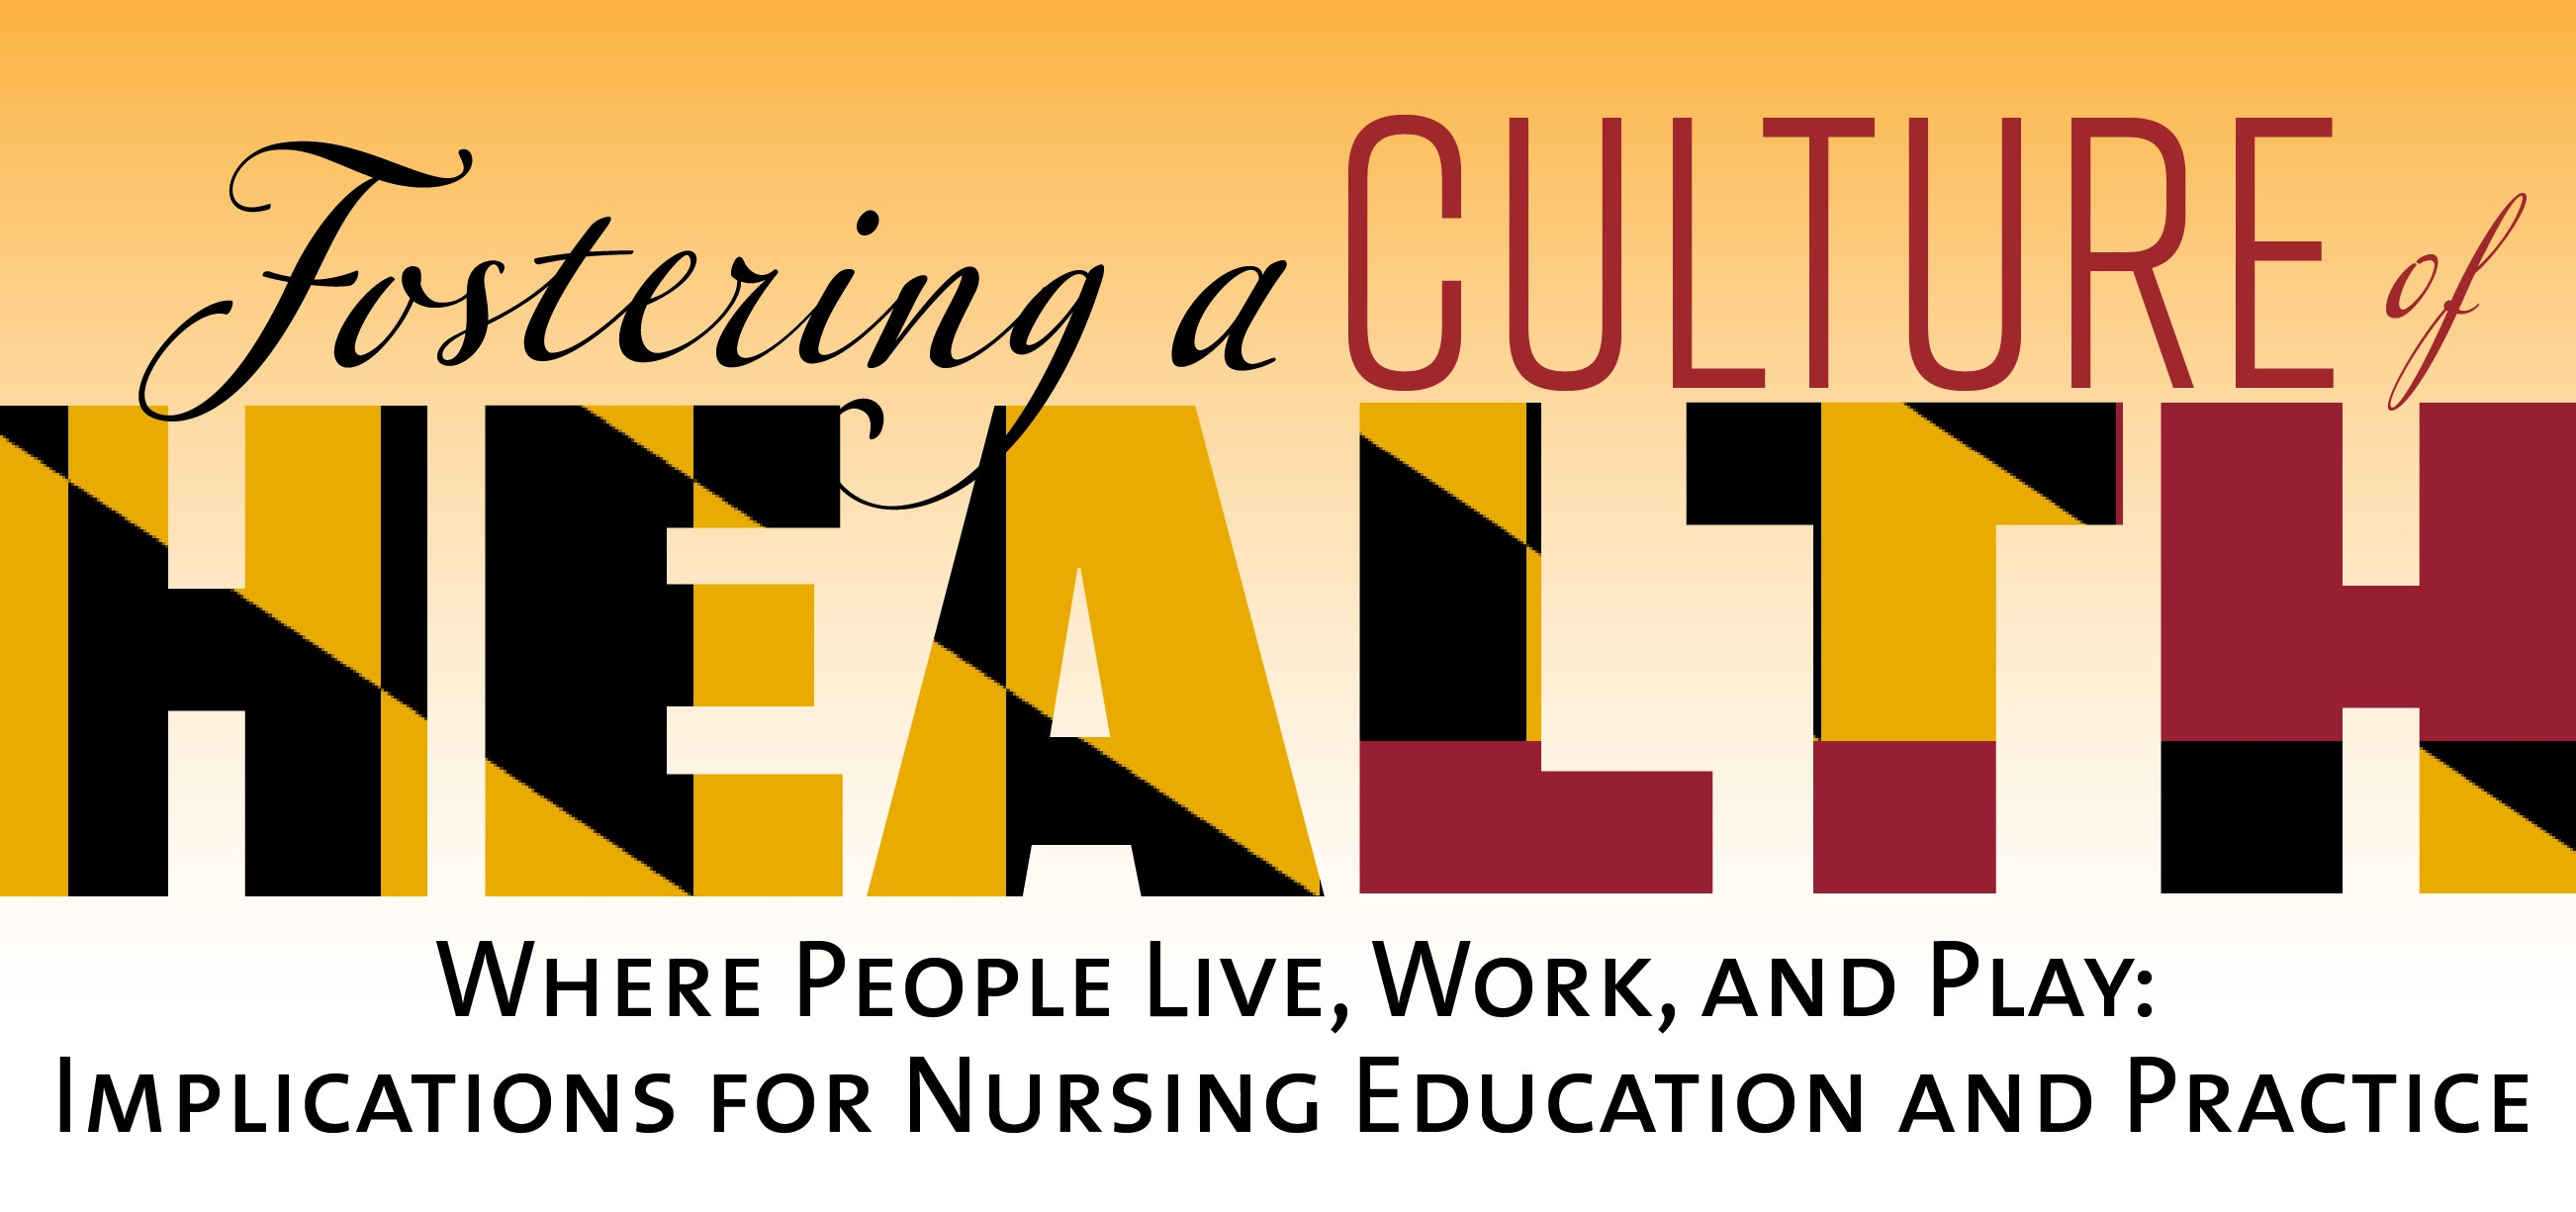 Fostering a Culture of Health Where People Live, Work, and Play: Implications for Nursing Education and Practice